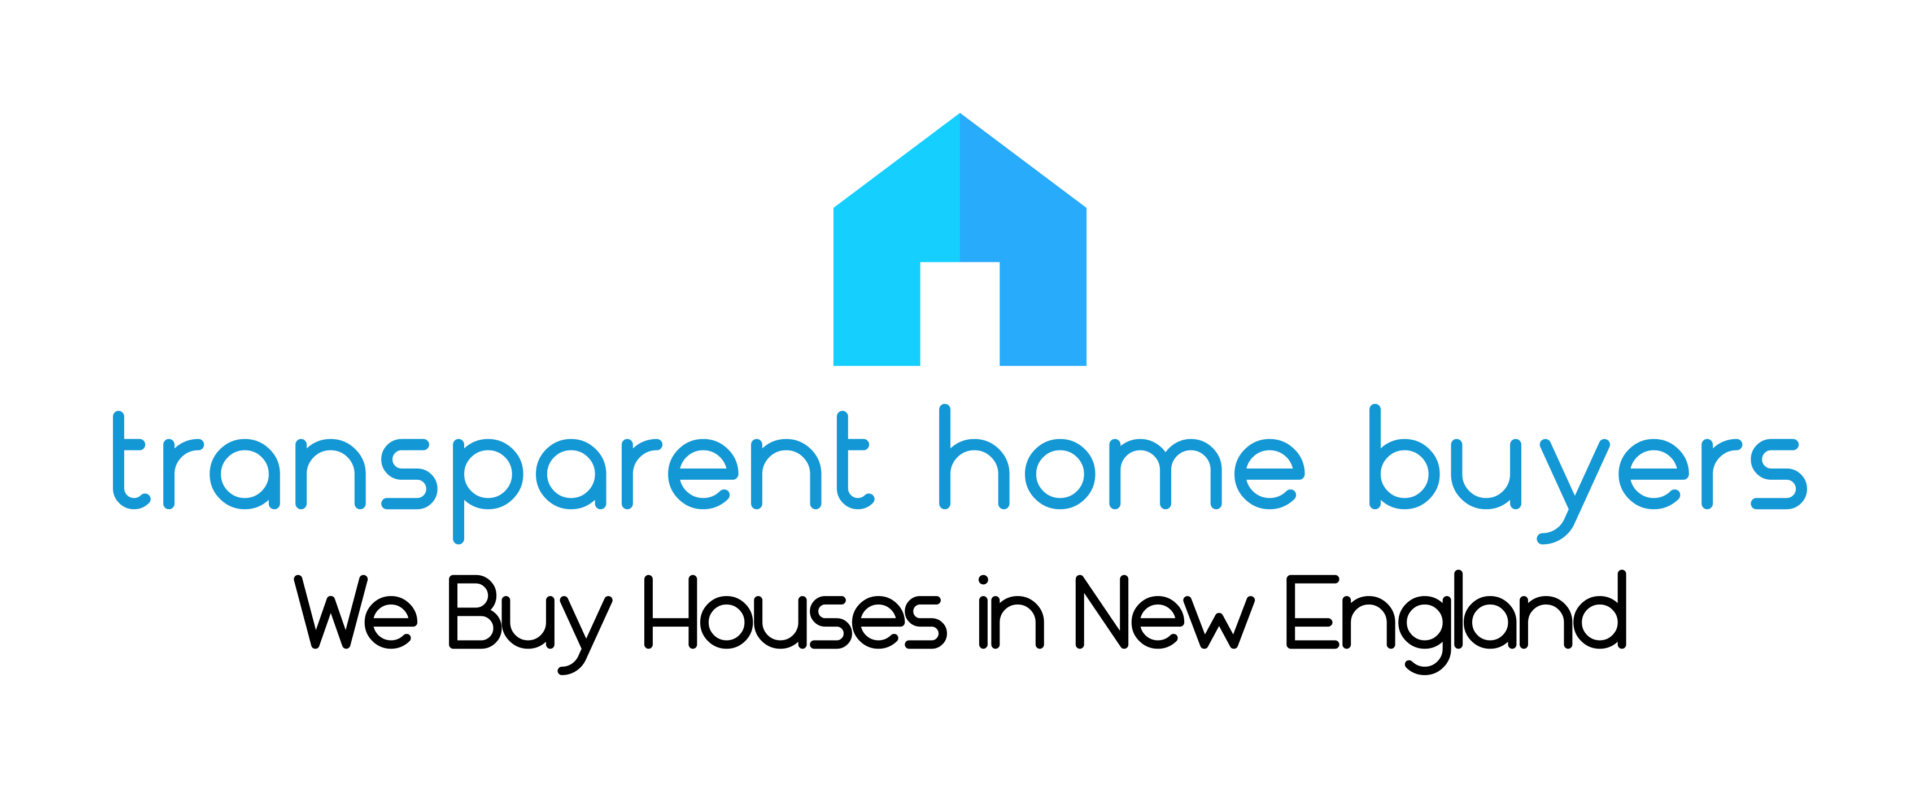 Transparent Home Buyers | Trusted Home Buyers In Massachusetts logo